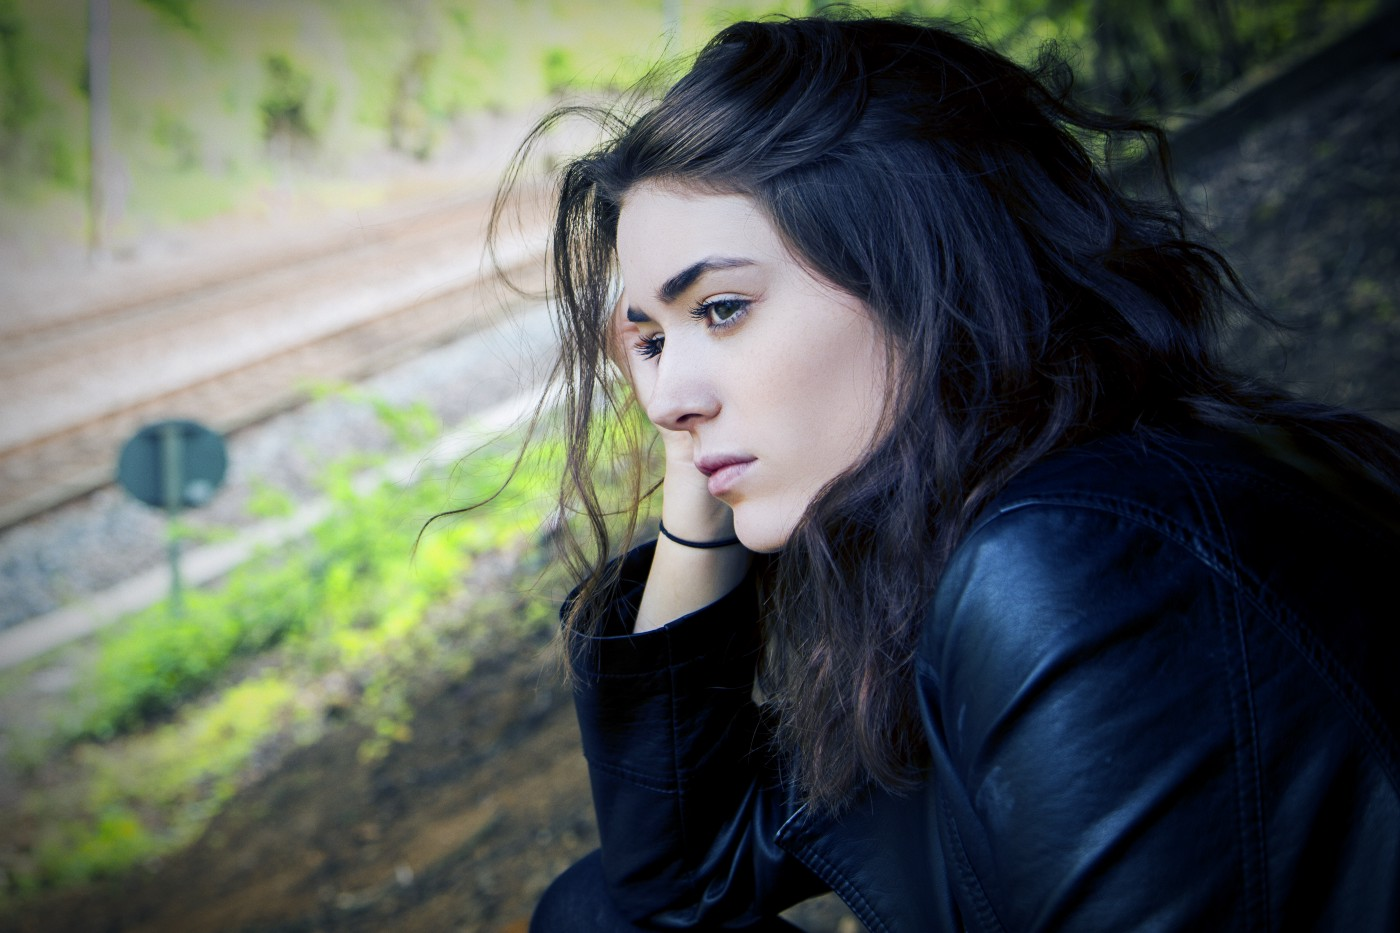 A young women staring into the distance with jet black hair thinking